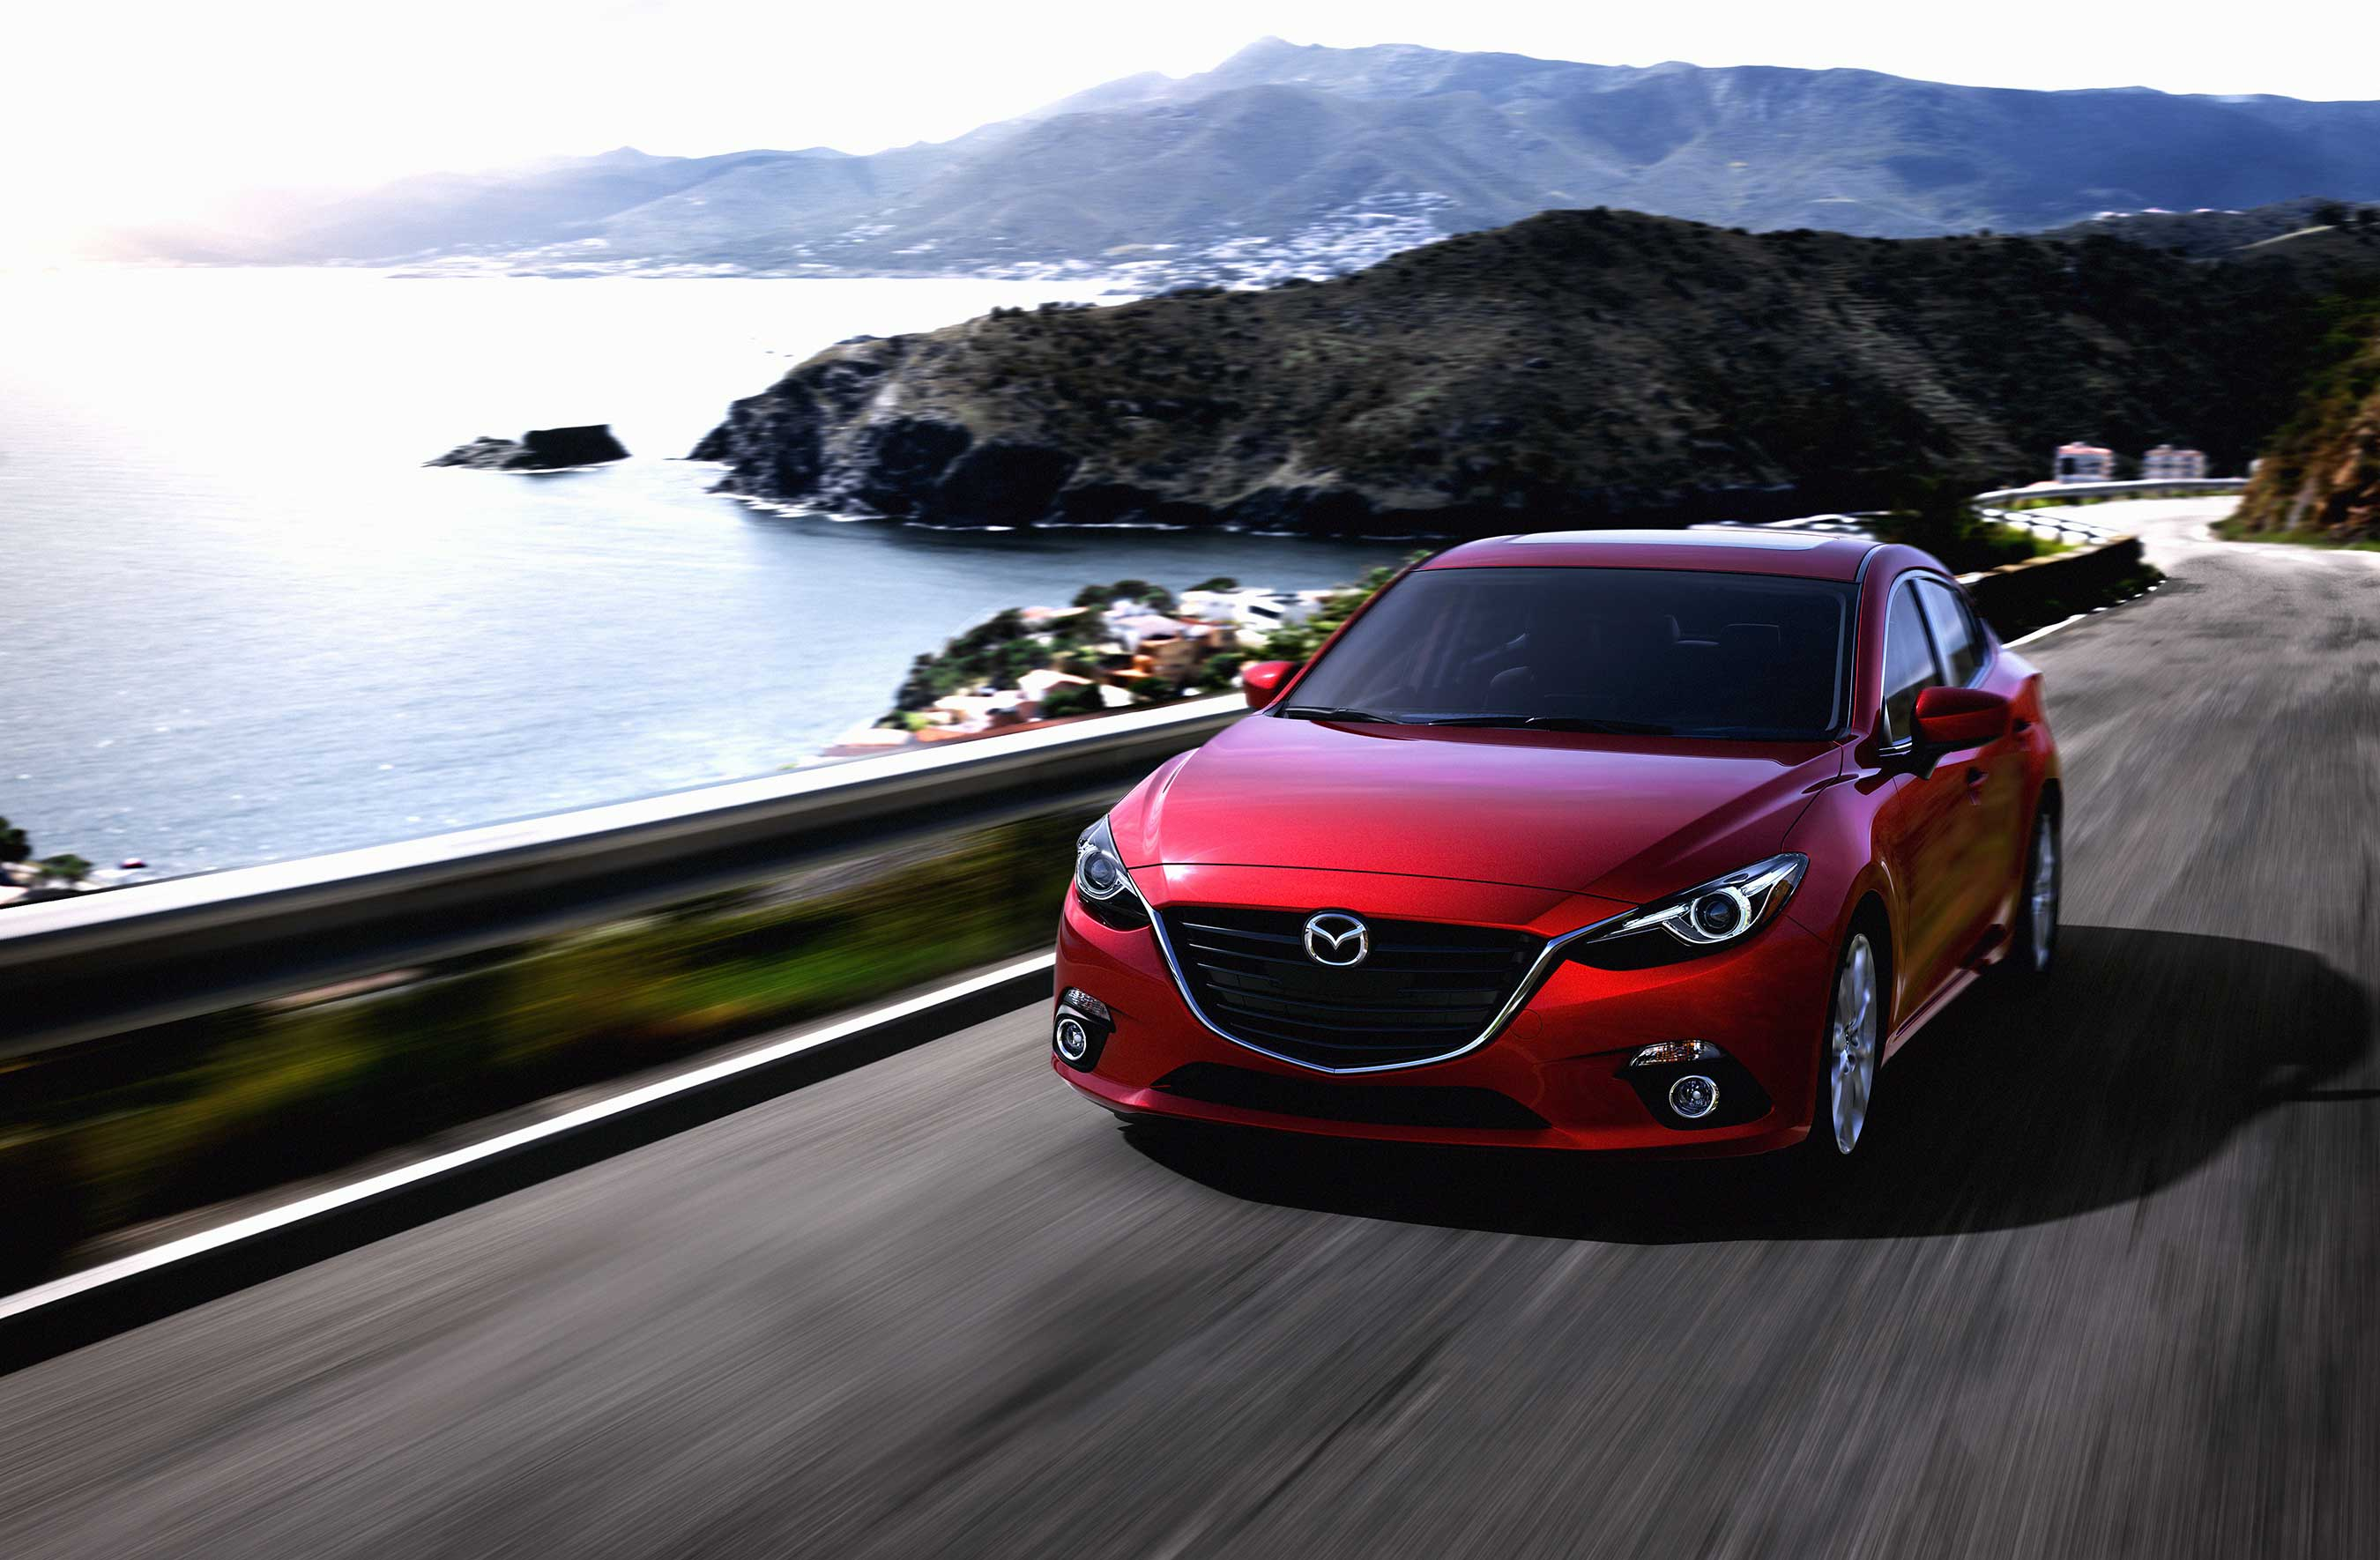 2014 MAZDA3: Since the beginning of its 11 year existence, the Mazda3 has been named one of Kelley Blue Book's Coolest New Cars Under $18,000.